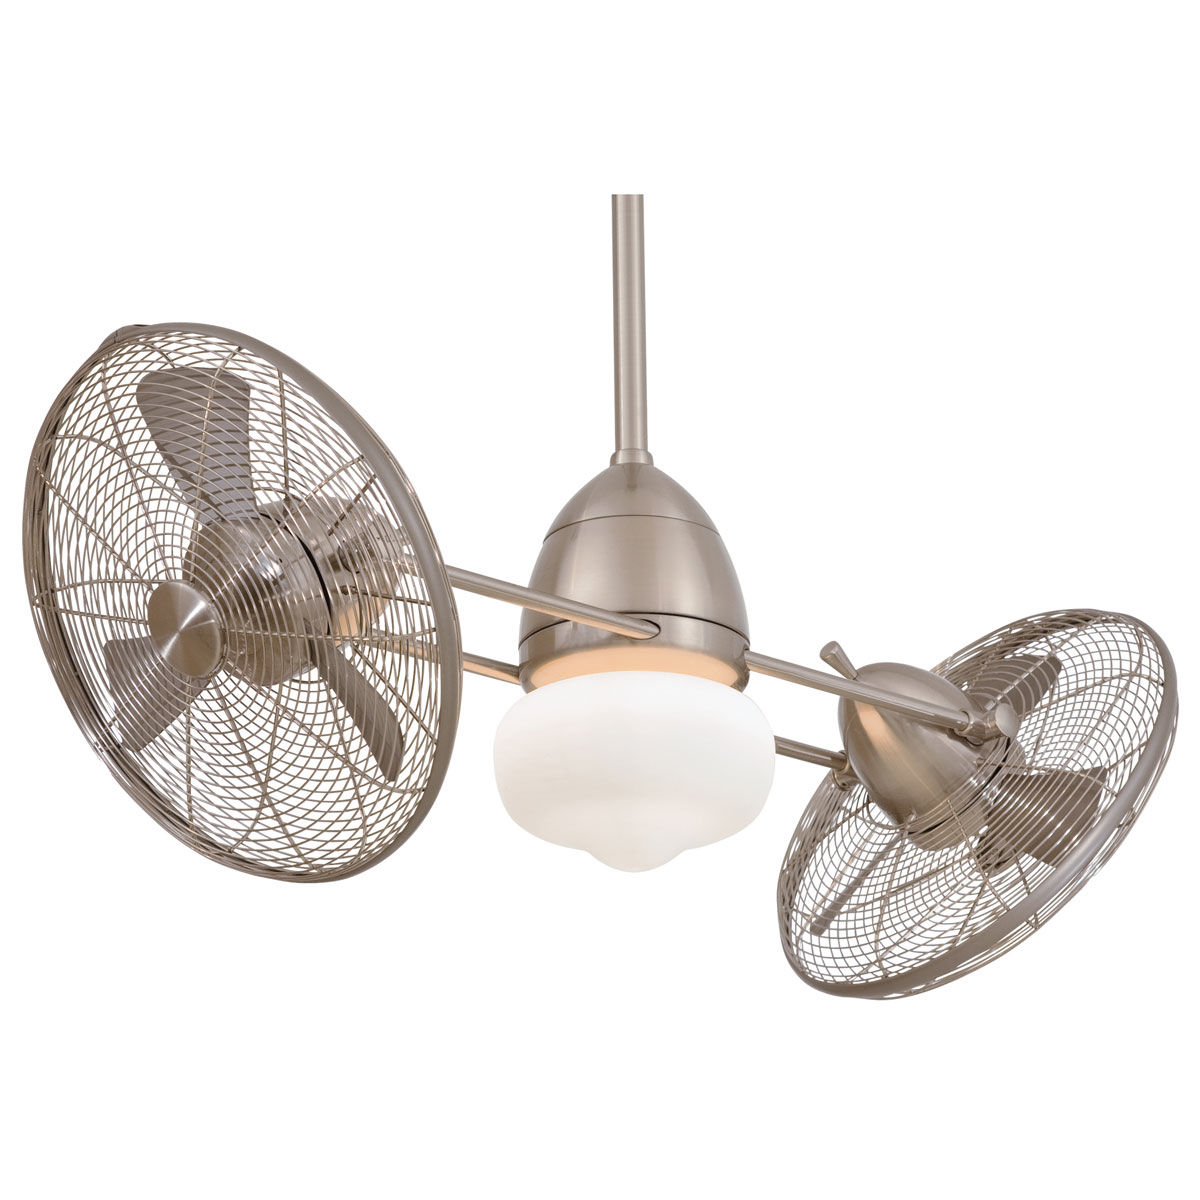 Double Oscillating Ceiling Fan